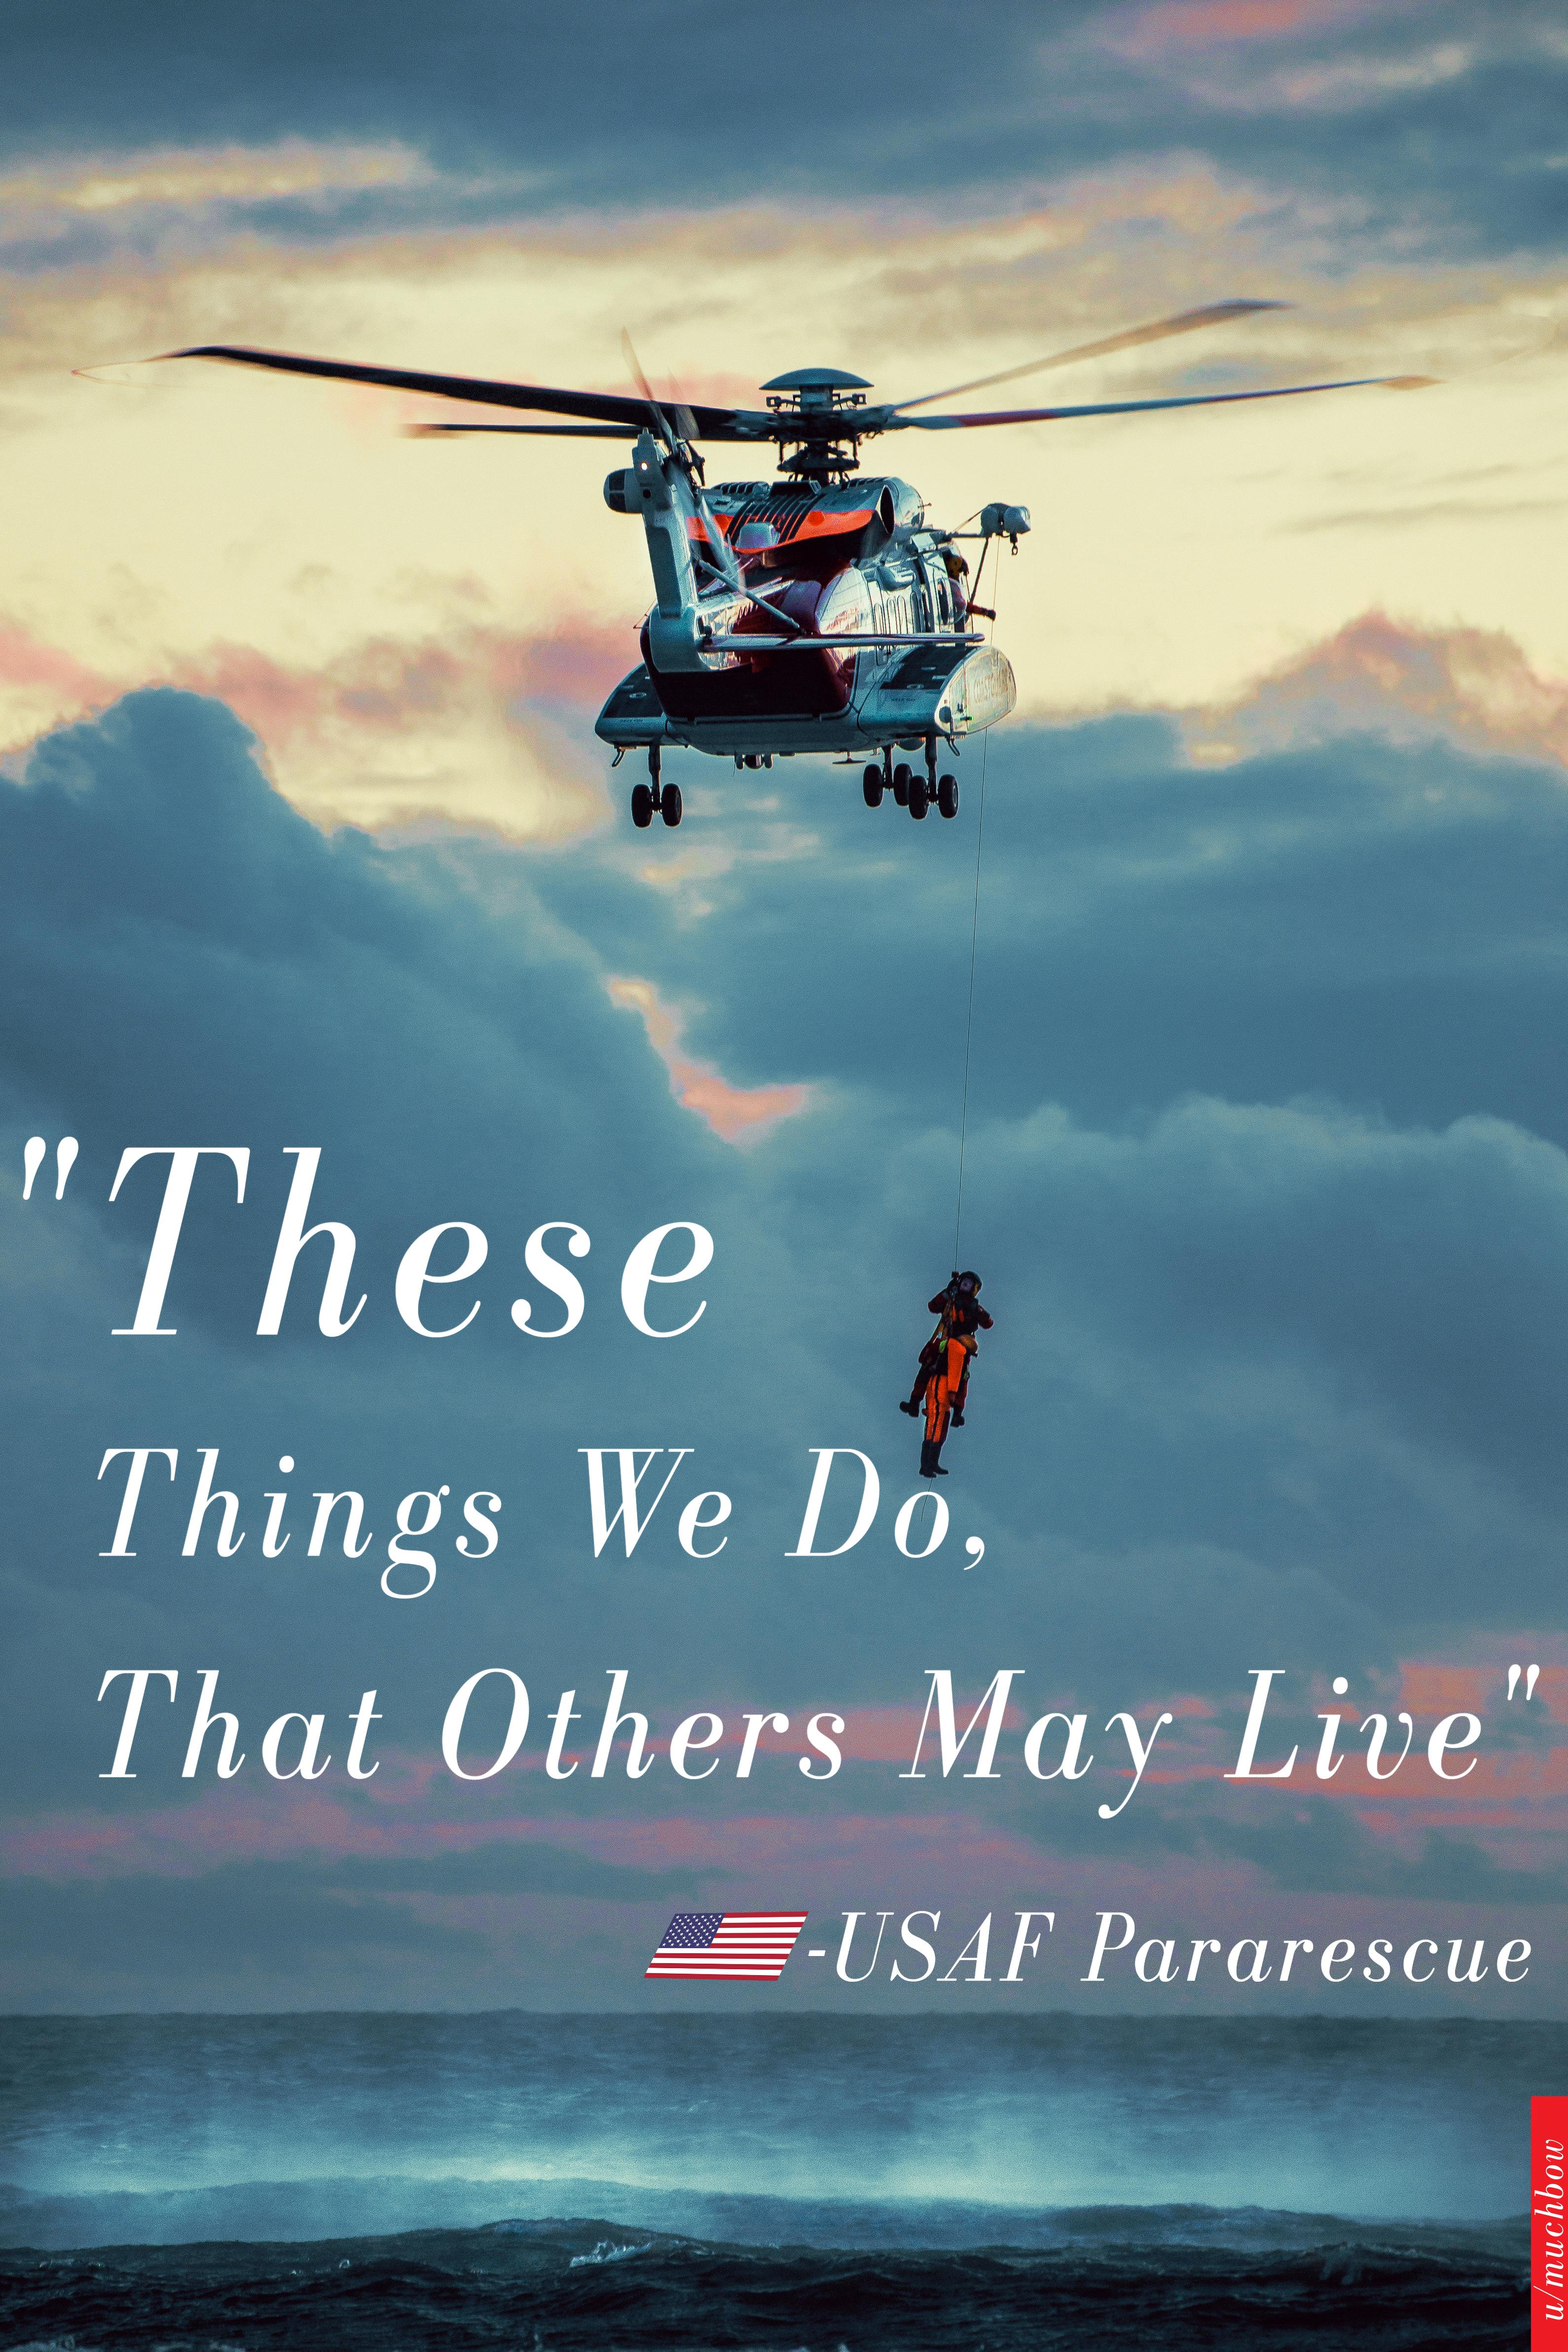 """These Things We Do, That Others May Live"" – USAF Pararescue Motto [3180X4770] [OC]"